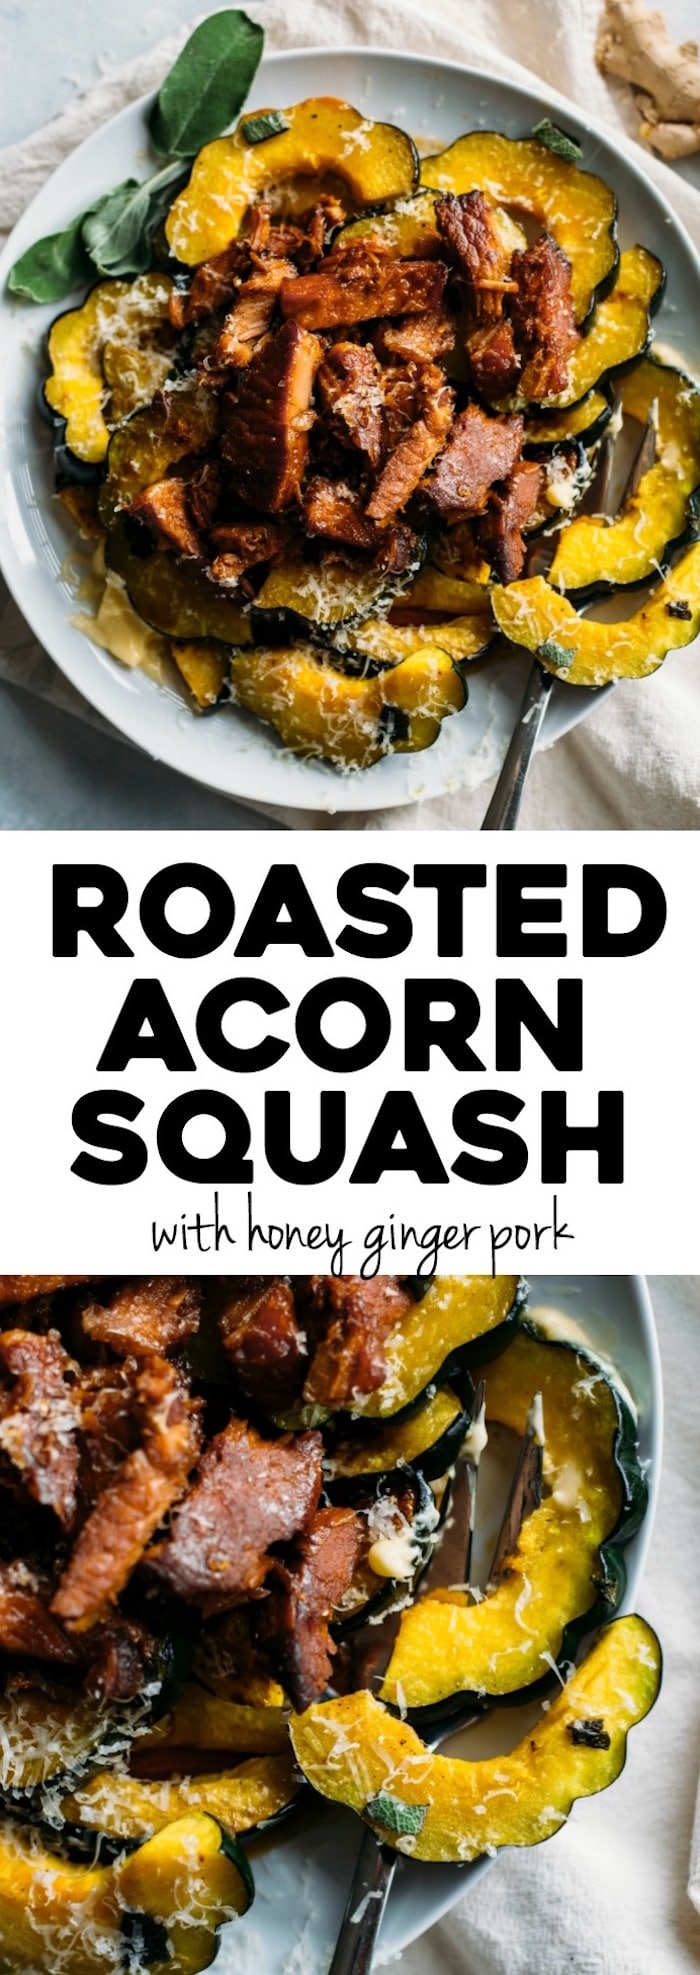 Roasted Acorn Squash | Acorn squash topped with honey ginger pork made in the slow cooker. A tasty way to enjoy squash! | thealmondeater.com